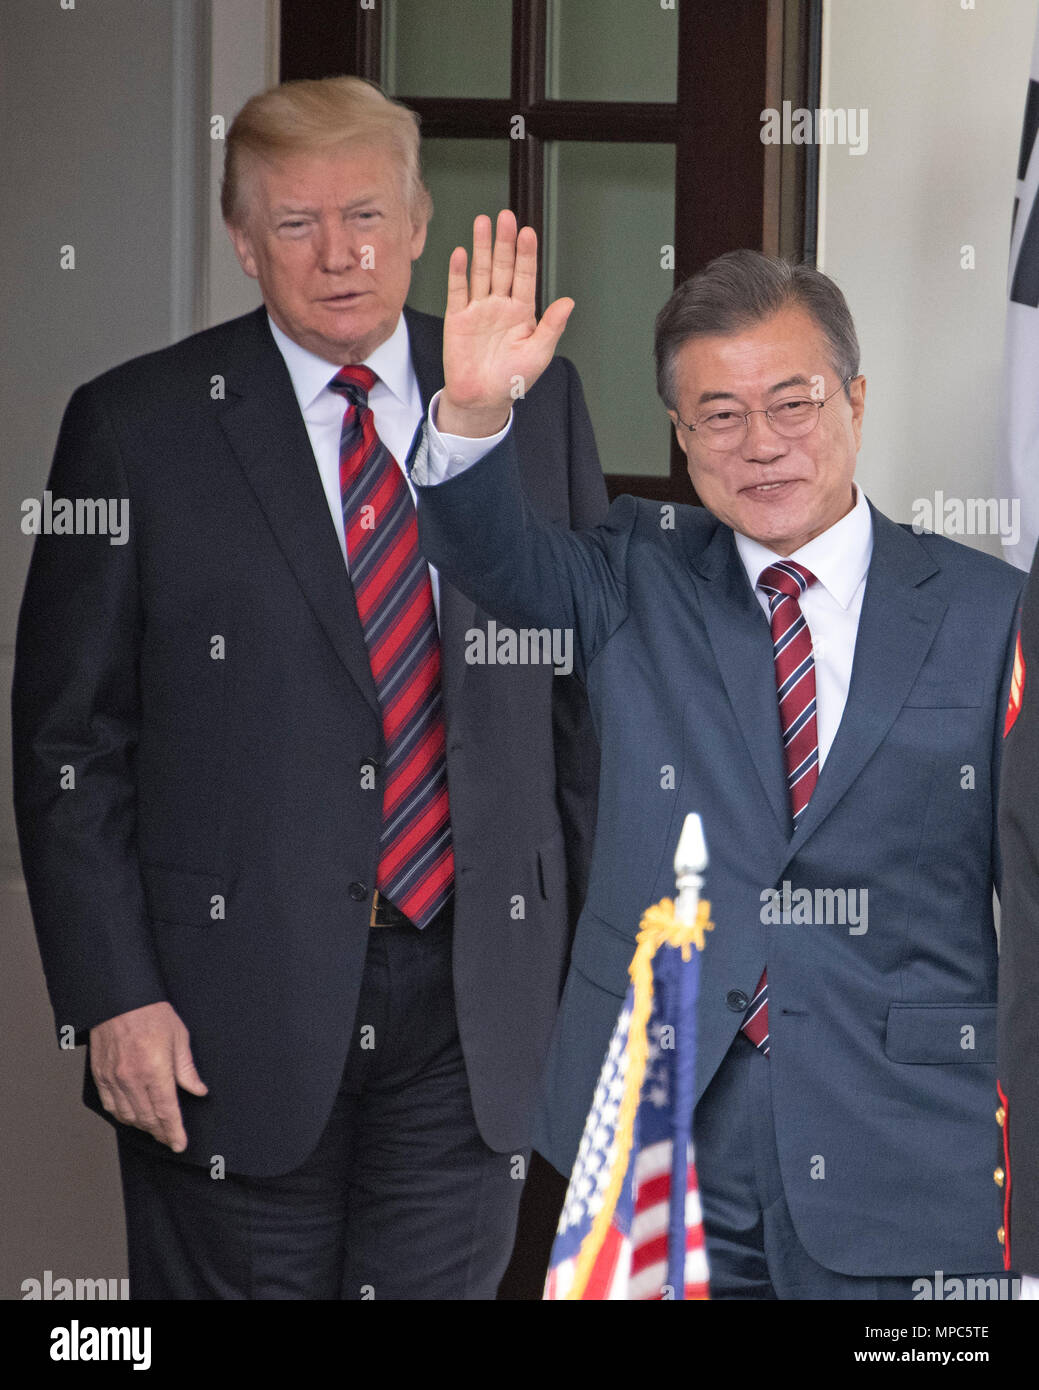 Singapore. 12th June, 2018. United States President Donald J. Trump looks on as President Moon Jae-in of South Korea waves to the assembled press as he arrives for talks at the White House in Washington, DC on Tuesday, May 22, 2018. The two leaders are meeting ahead of President Trump's scheduled summit with Kim Jung-un of North Korea which is tentatively scheduled for June 12, 2018 in Singapore. Credit: Ron Sachs/CNP | usage worldwide Credit: dpa/Alamy Live News - Stock Image